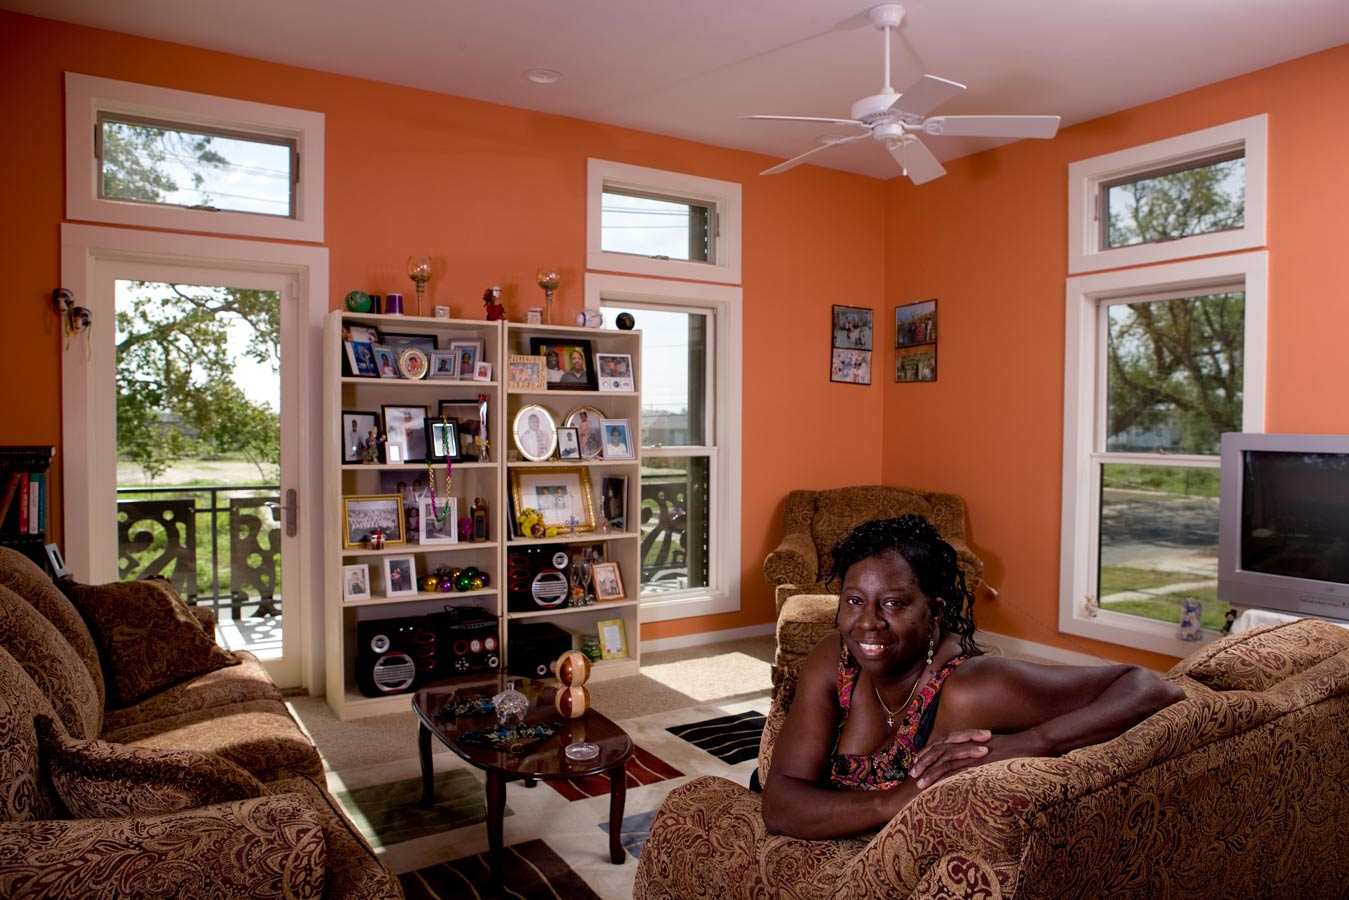 <p>Melba Barnes, the first owner of a KieranTimberlake house in the Lower Ninth Ward, in her completed home on Tennessee Street. Barnes lost her previous home in Hurricane Katrina. <br><small>© Alexei Lebedev/Momenta</small></p>